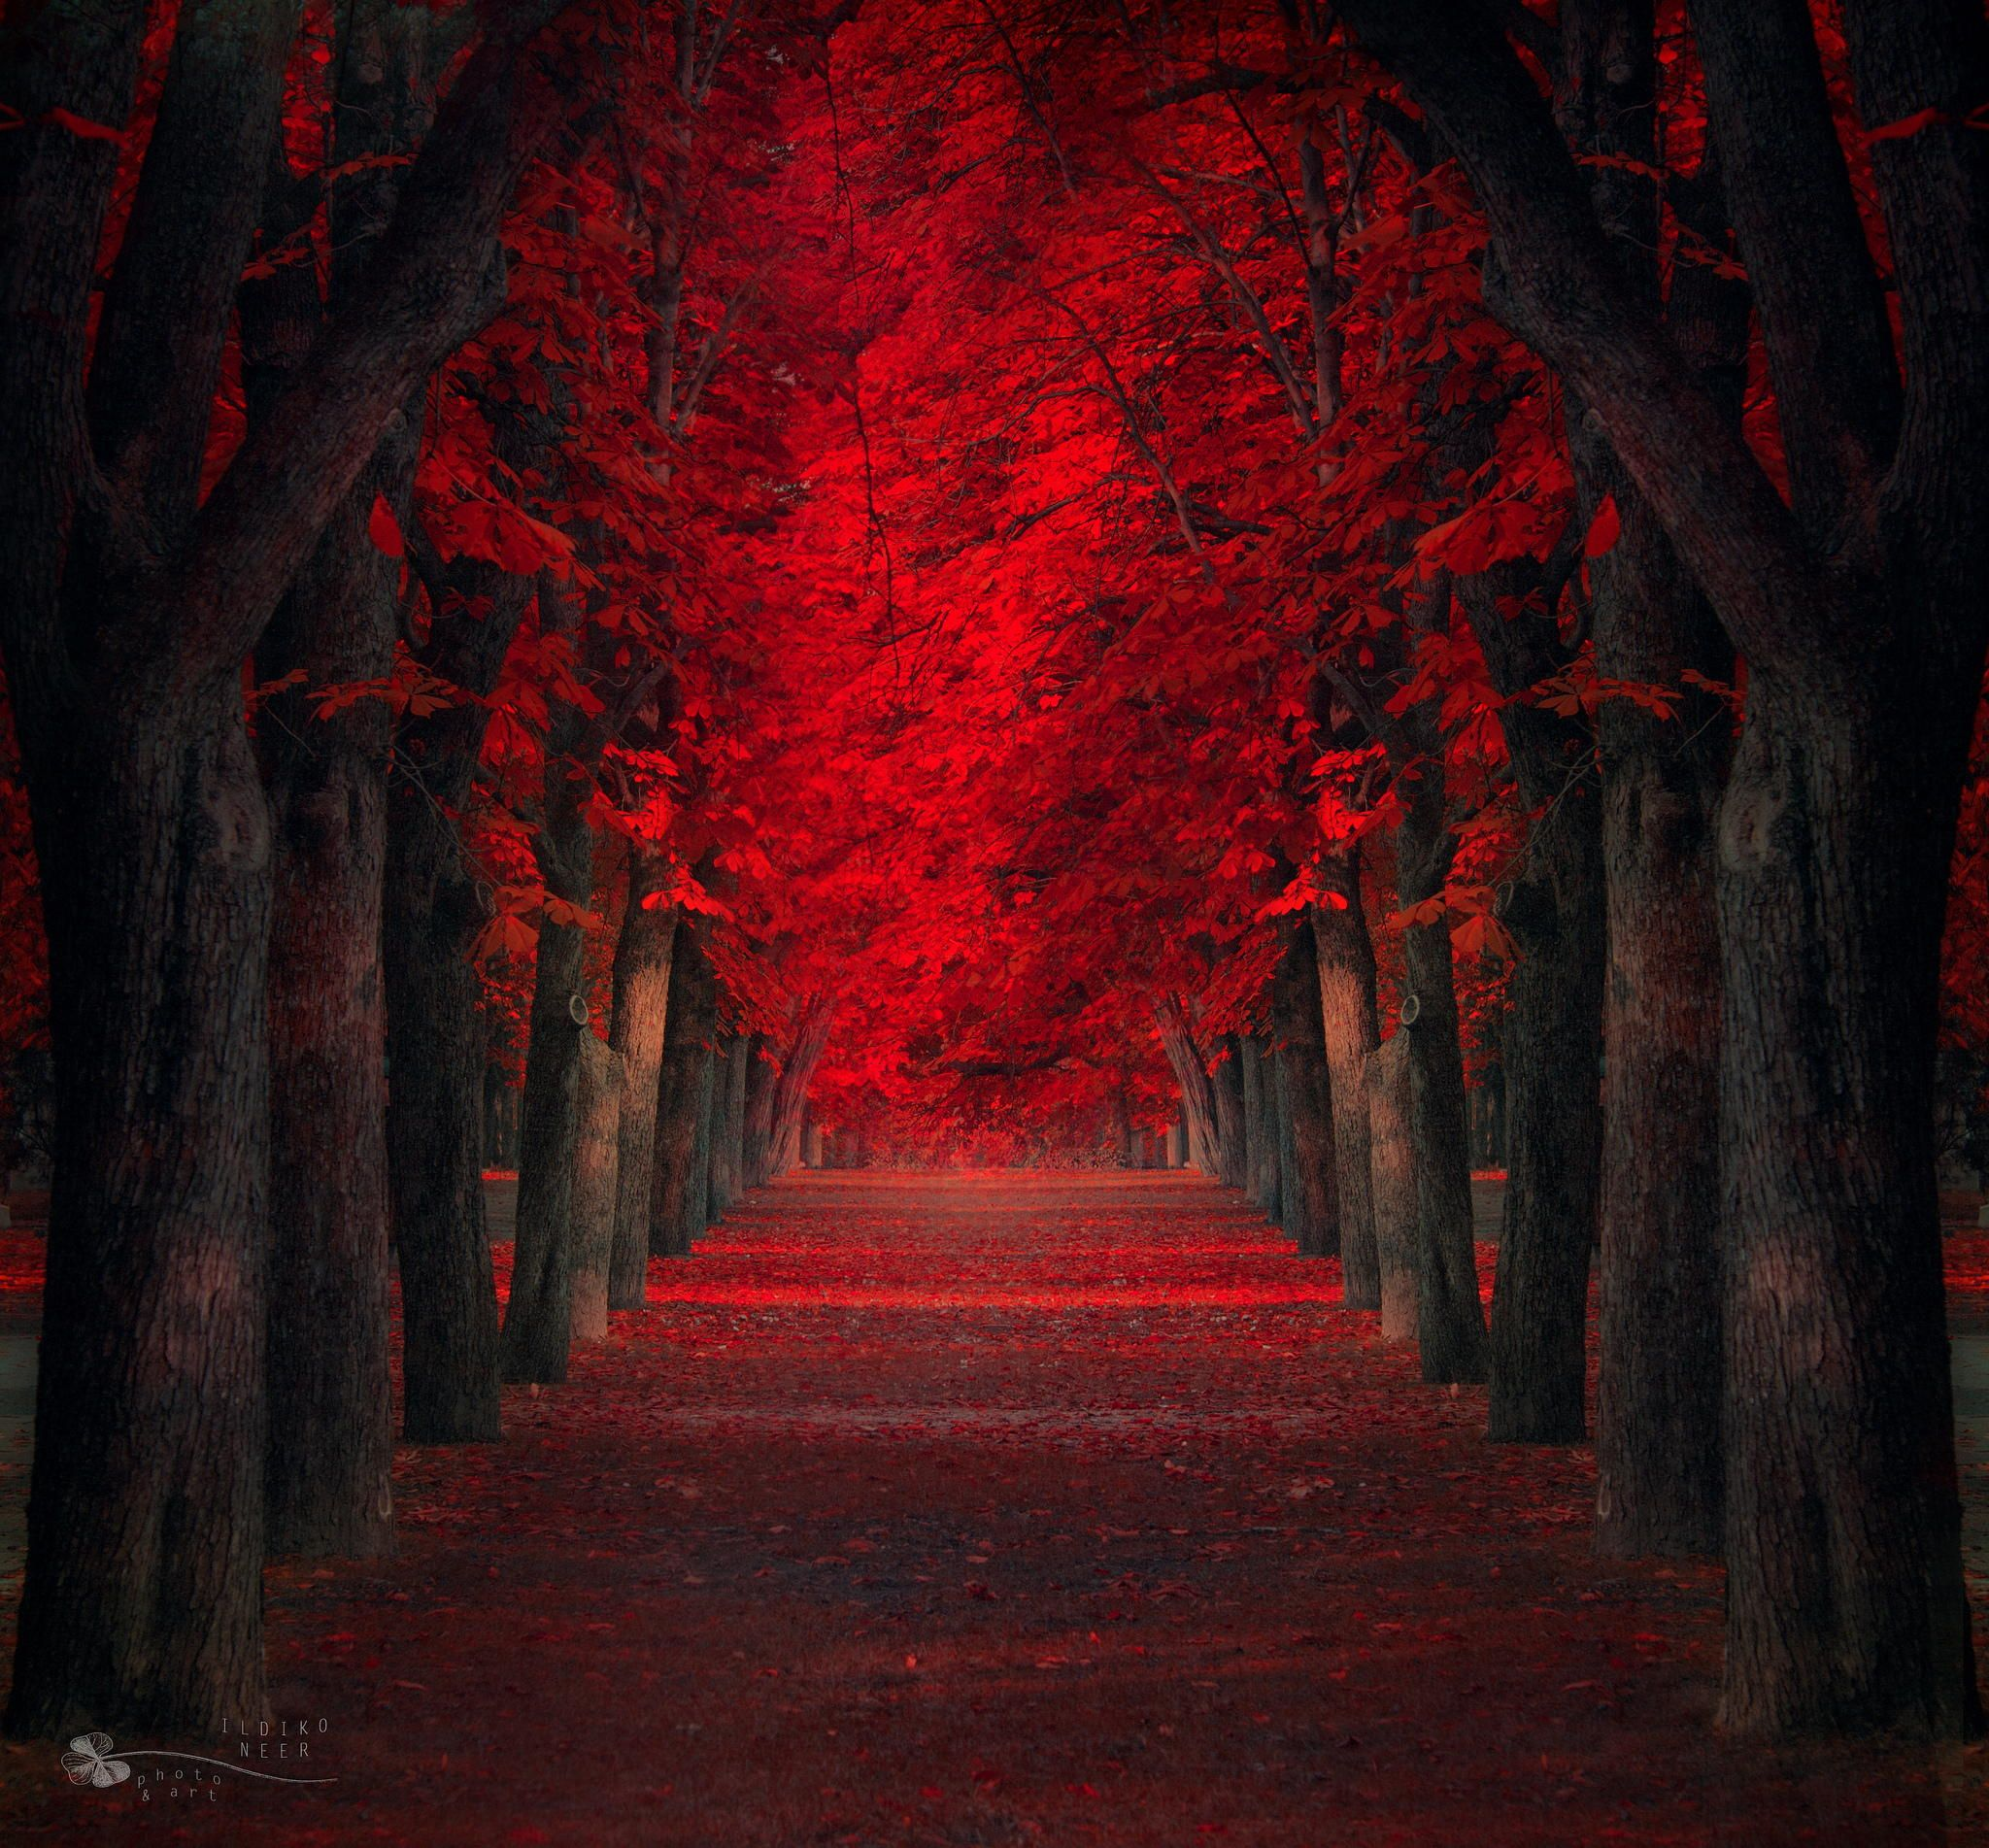 Photograph Endless Passion by Ildiko Neer on 500px